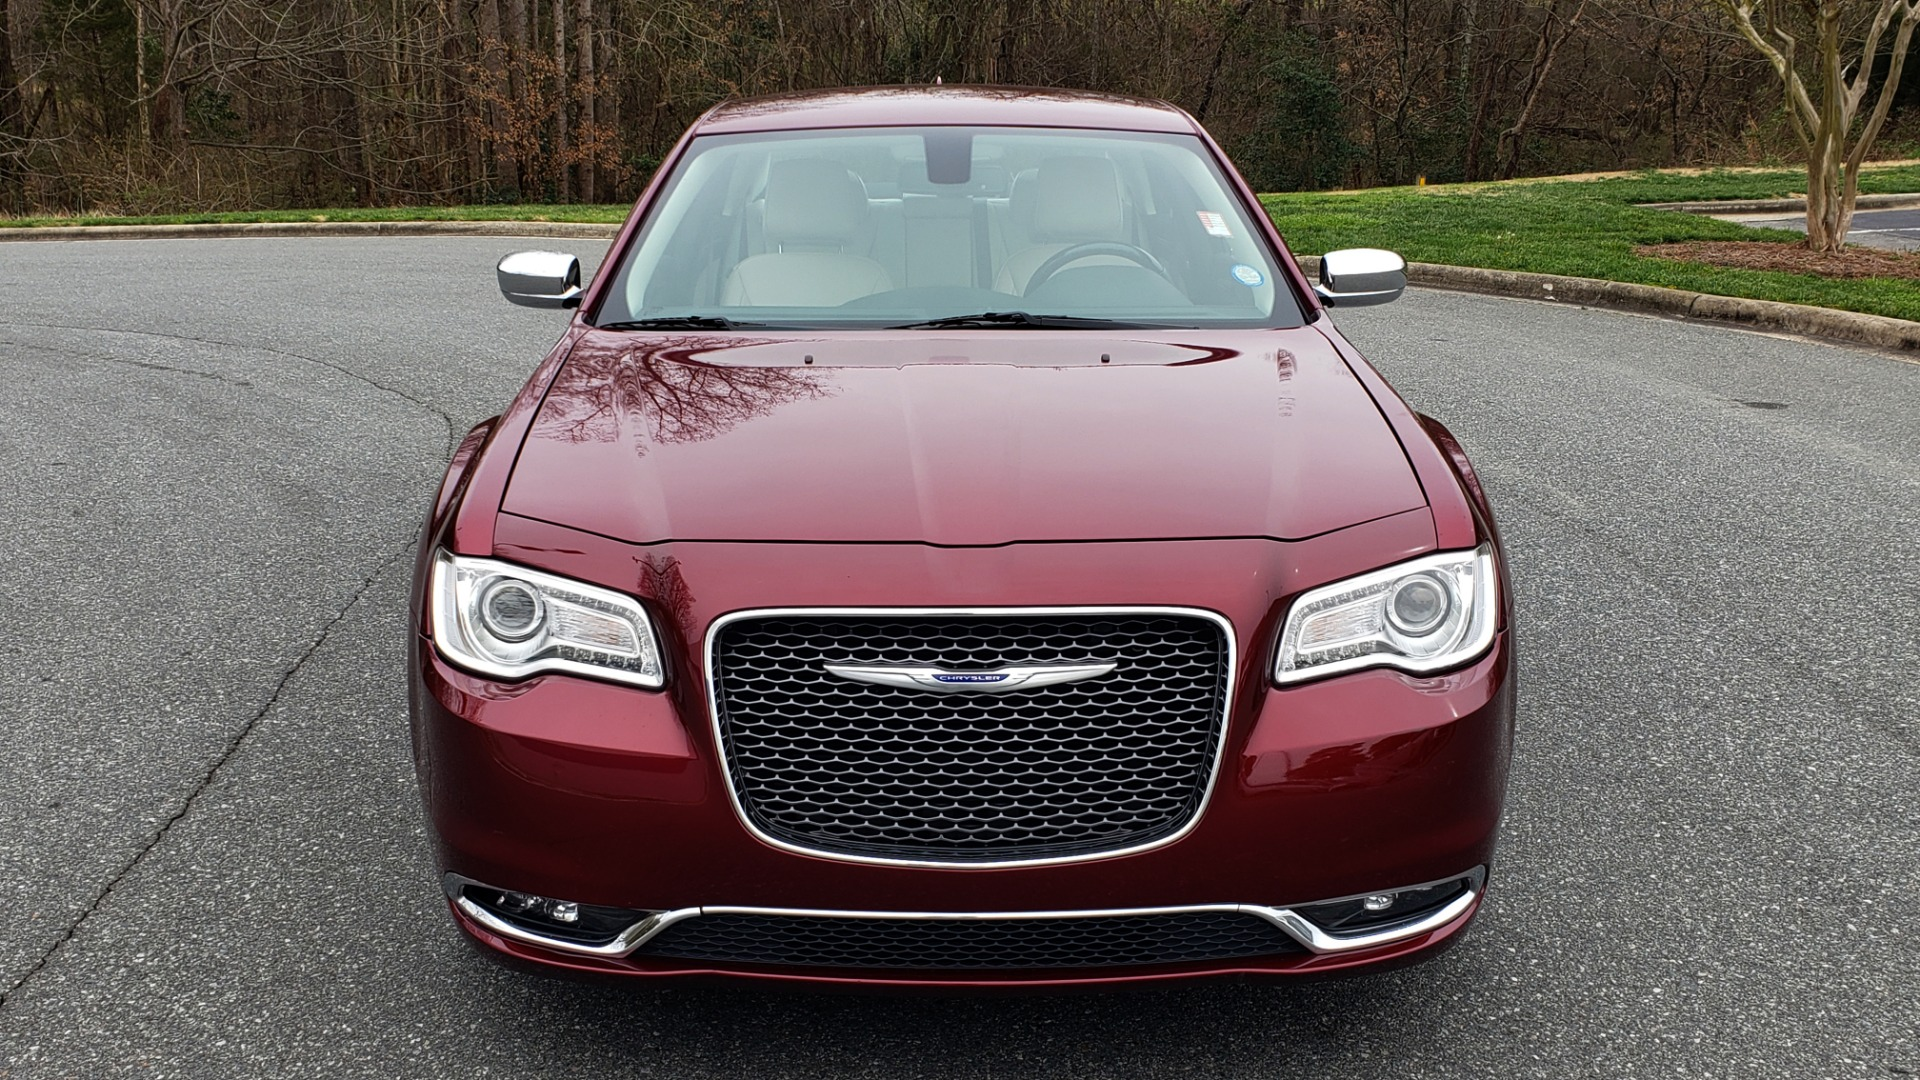 Used 2019 Chrysler 300 LIMITED / 3.6L V6 / 8-SPD AUTO / LEATHER / REARVIEW for sale Sold at Formula Imports in Charlotte NC 28227 25